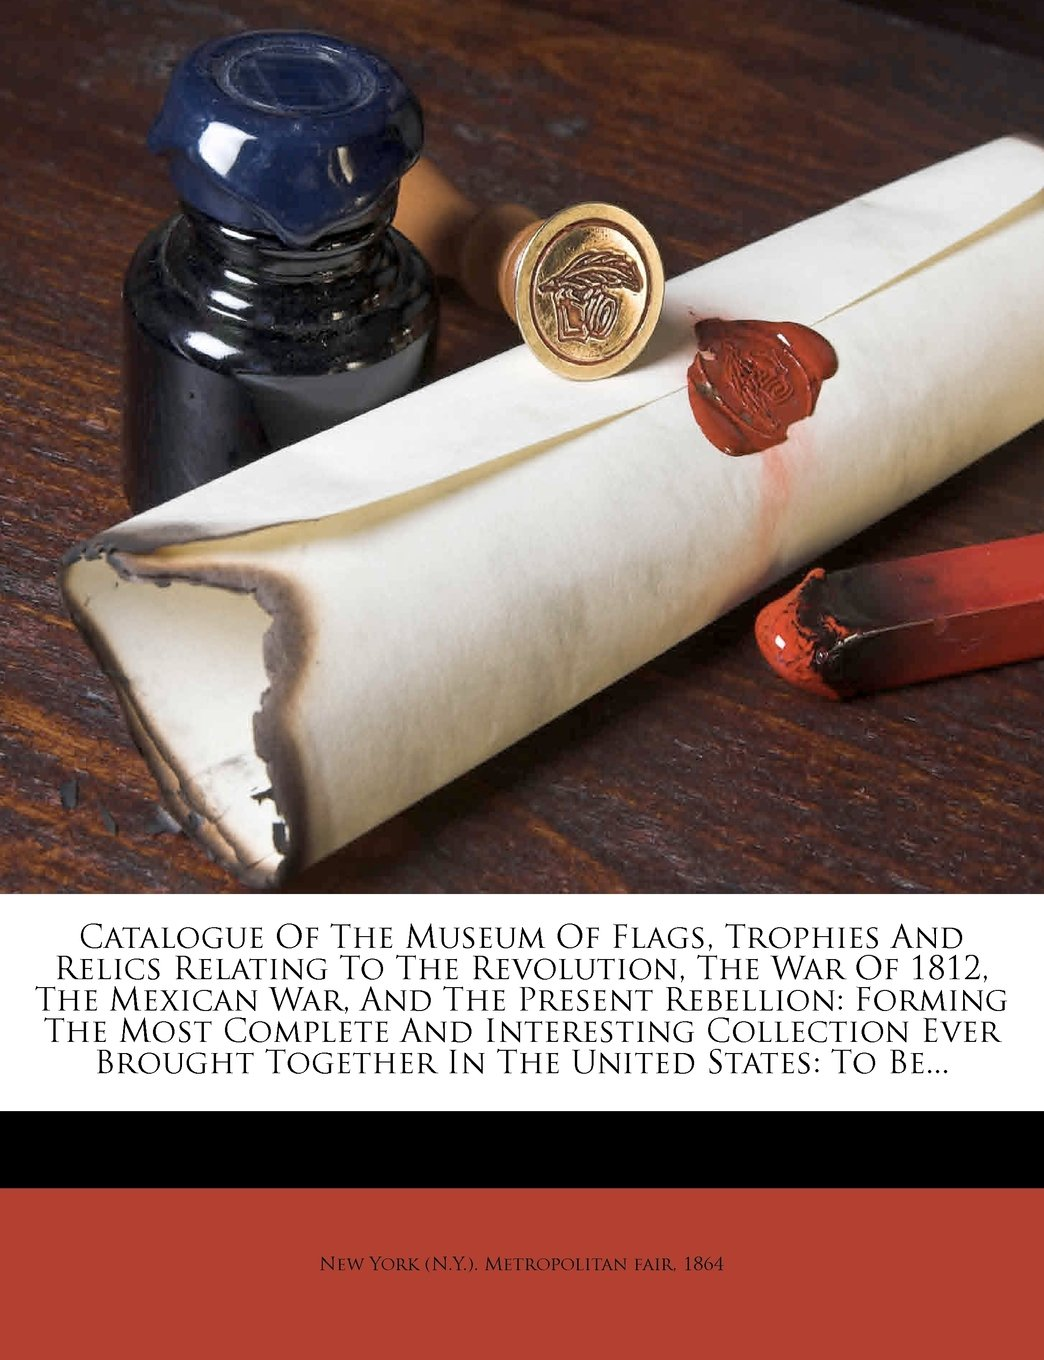 Catalogue Of The Museum Of Flags, Trophies And Relics Relating To The Revolution, The War Of 1812, The Mexican War, And The Present Rebellion: Forming ... Together In The United States: To Be... pdf